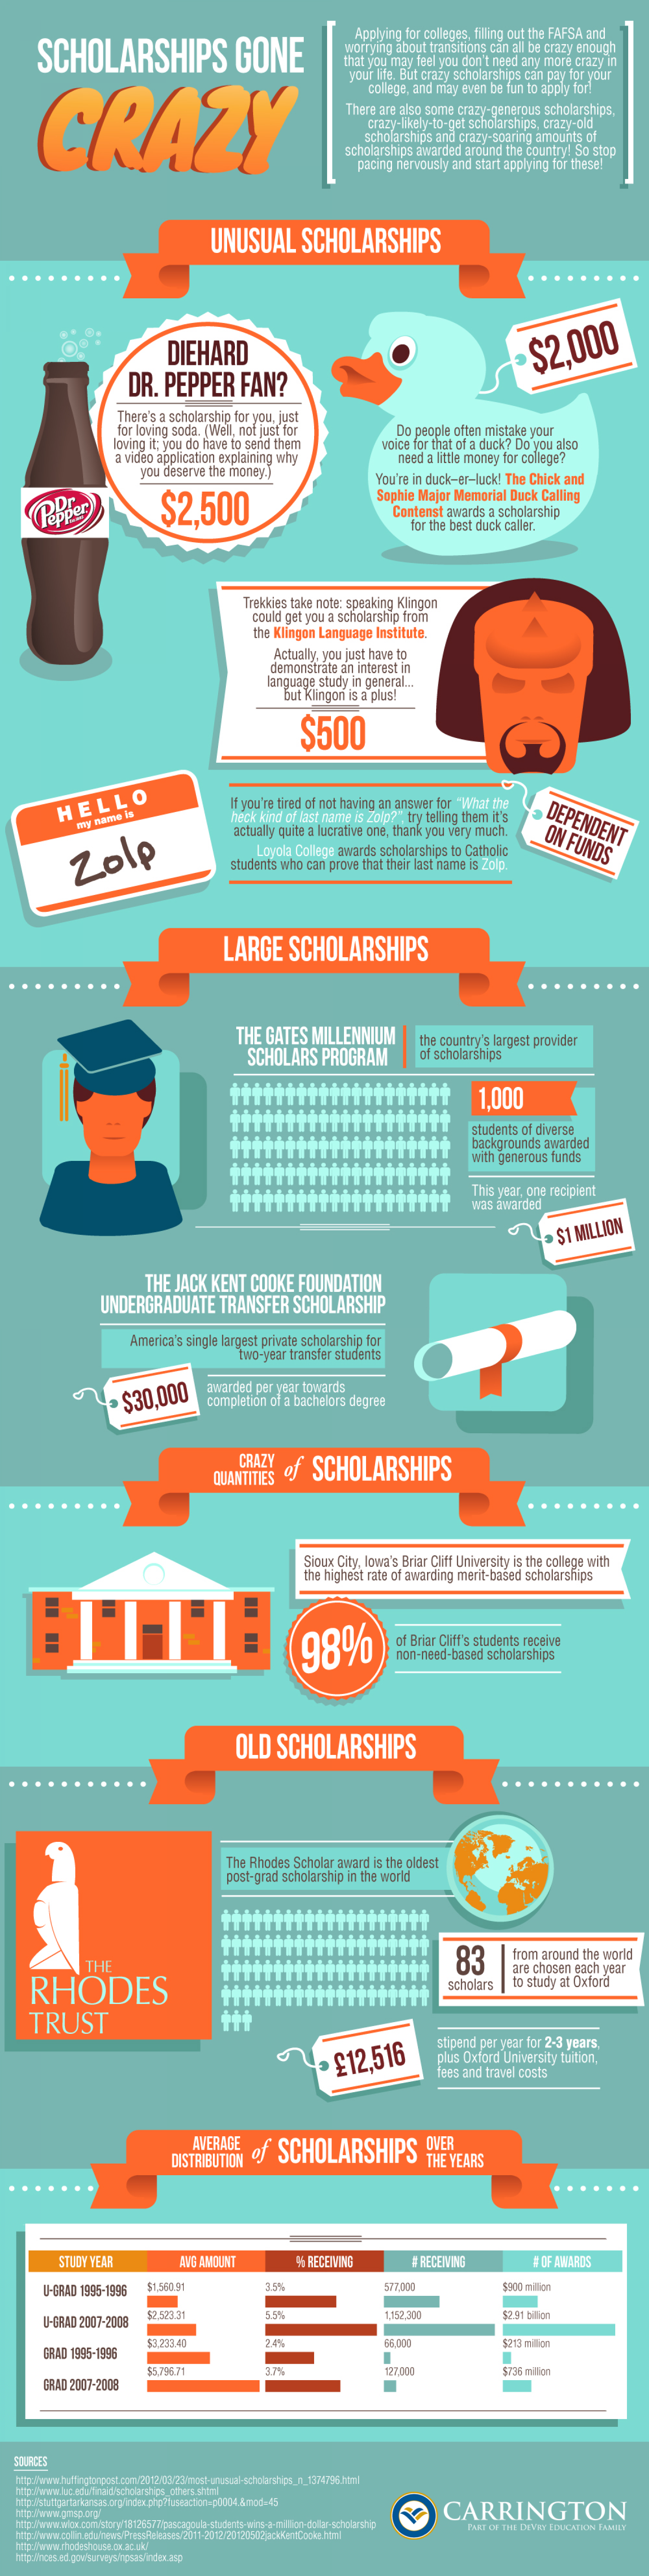 Scholarships Gone Crazy Infographic